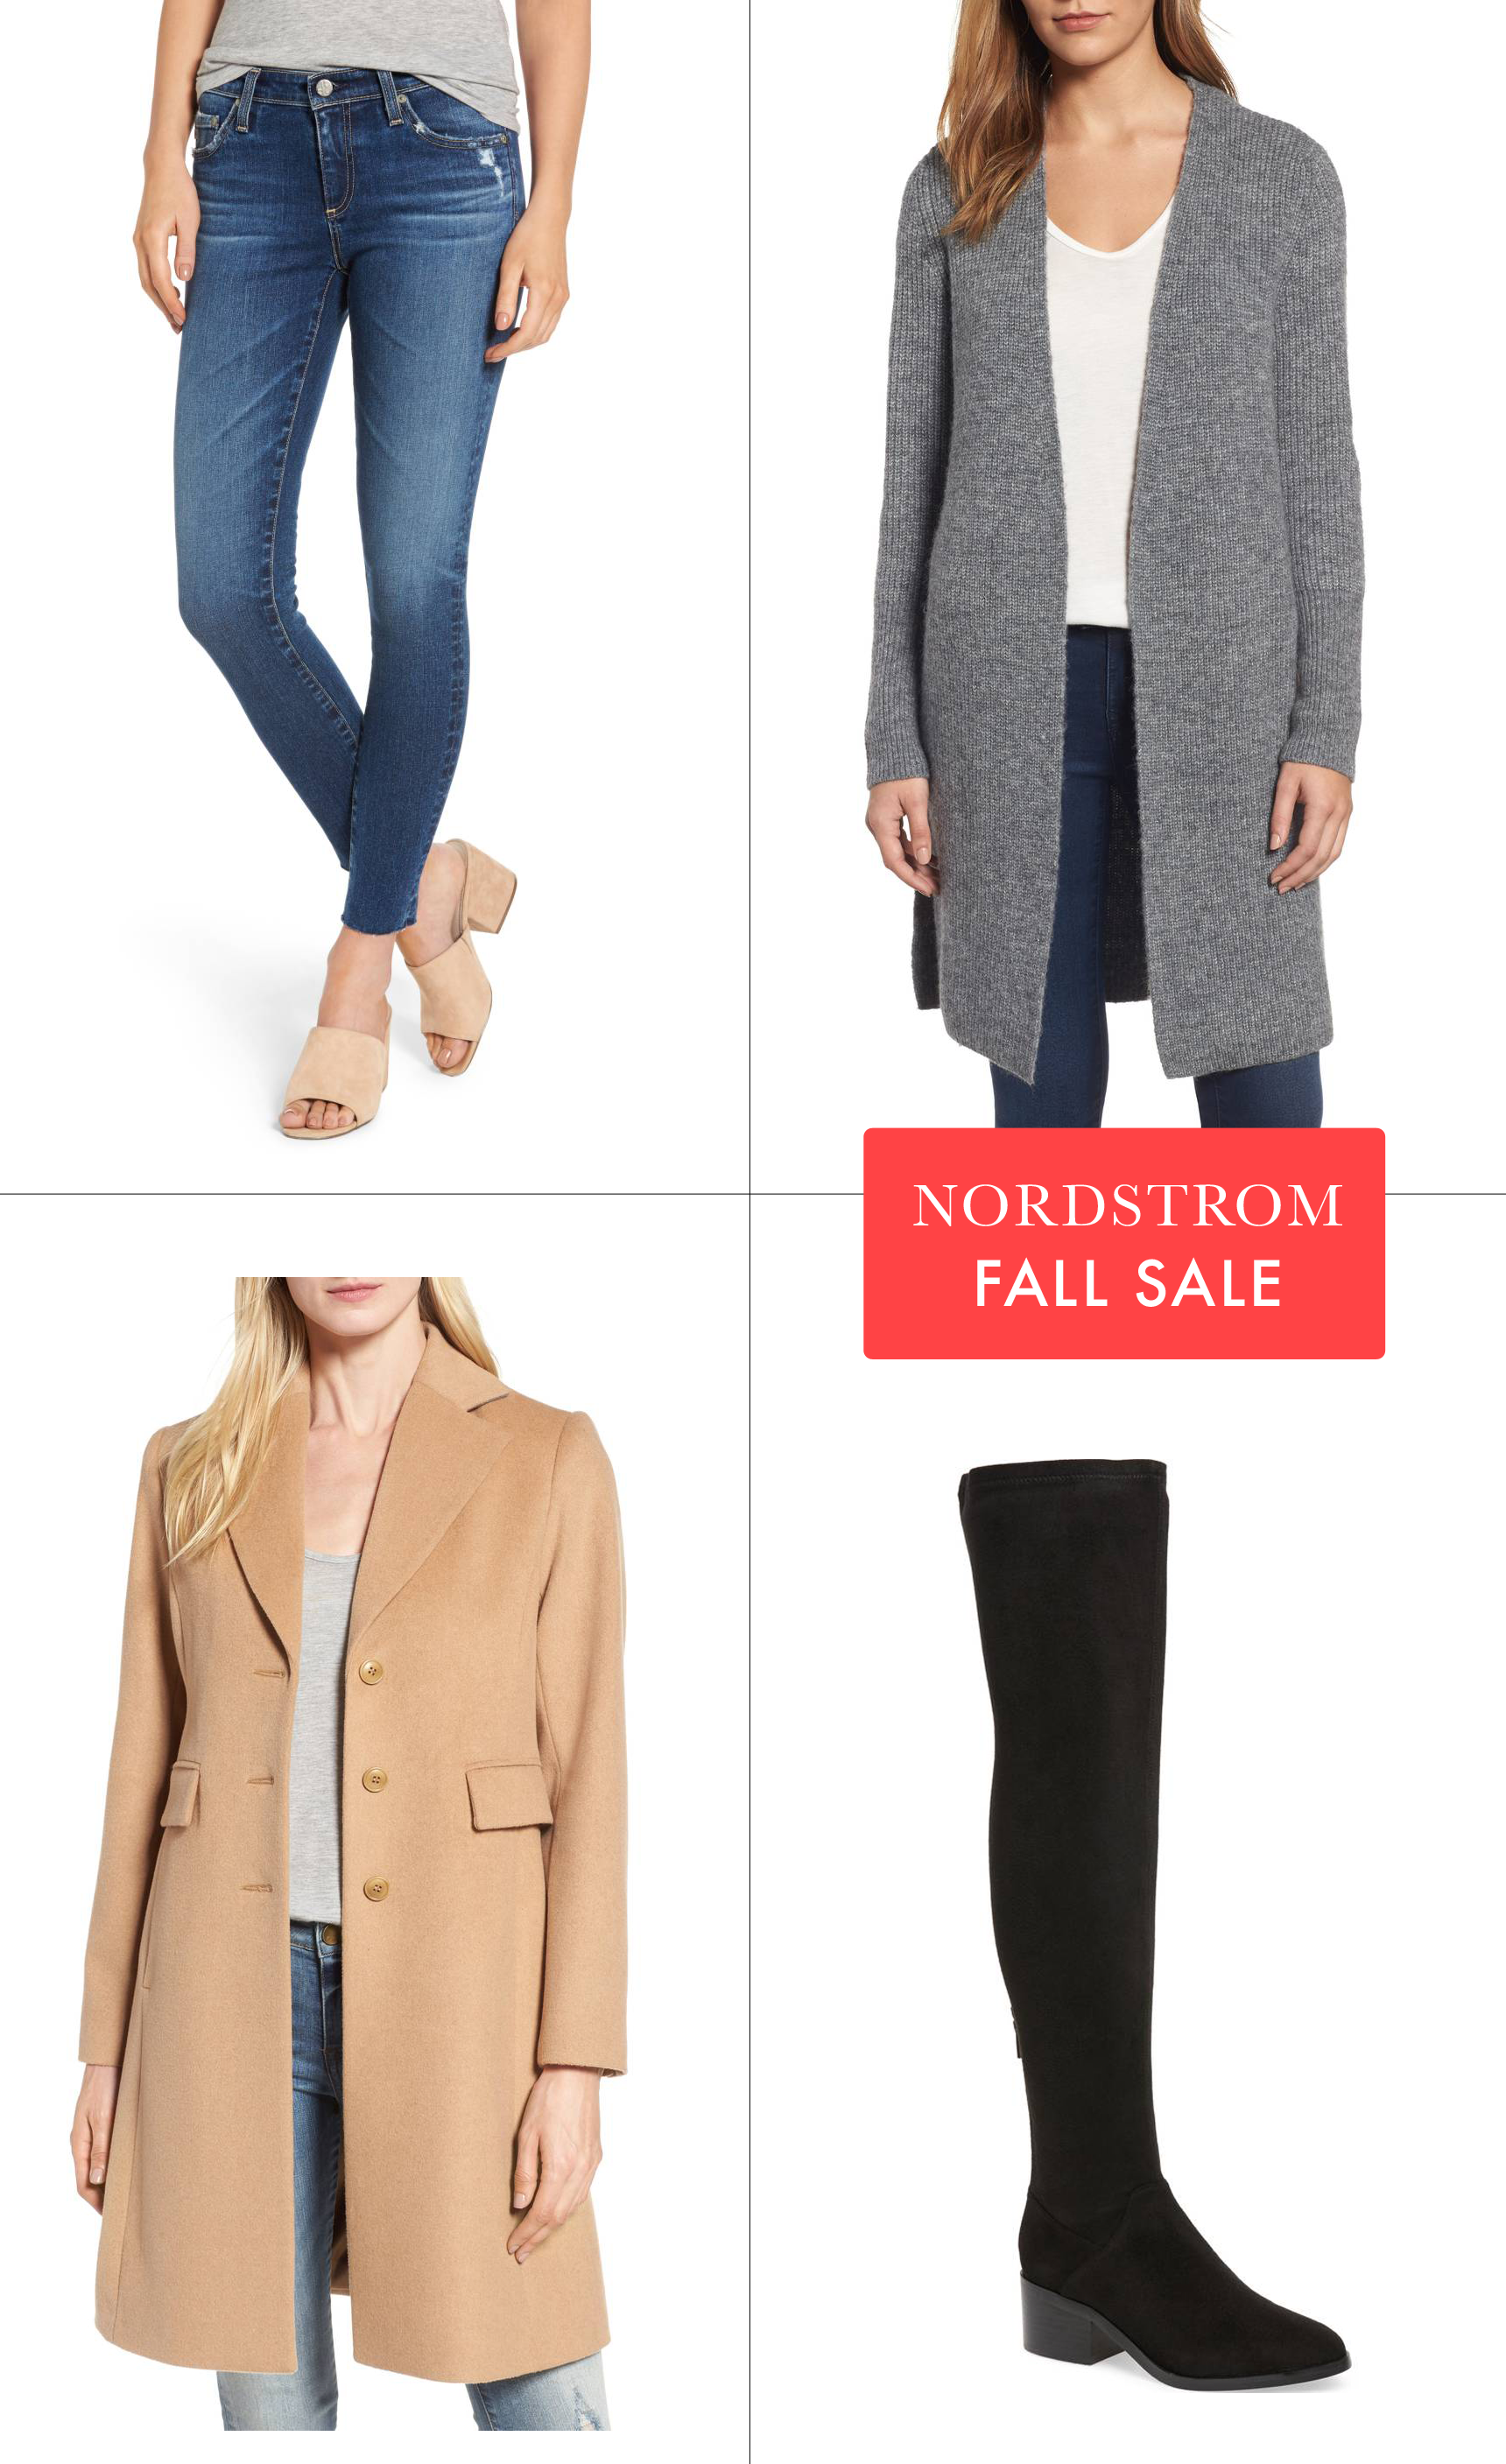 399c8e6a8b48b Nordstrom Fall Sale - Outfits on Sale + My Picks - Crystalin Marie